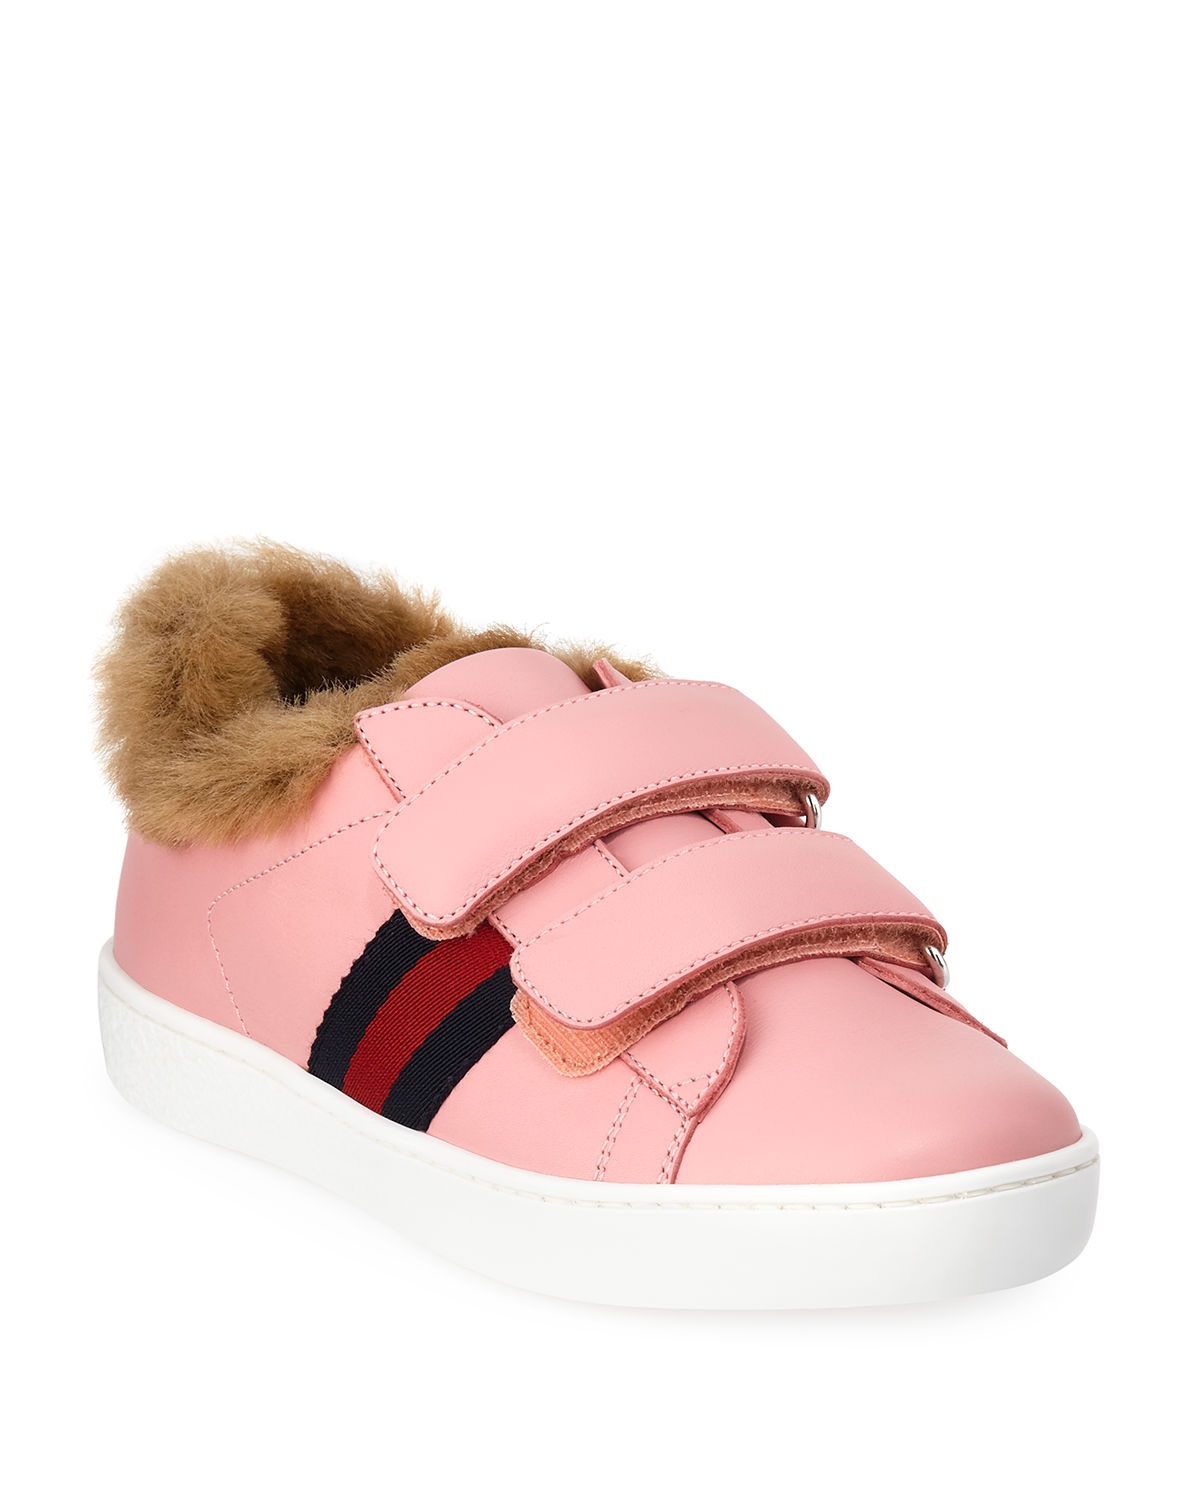 Aceweb new ace web-trim leather sneakers w/ faux-fur lining, kids in pink